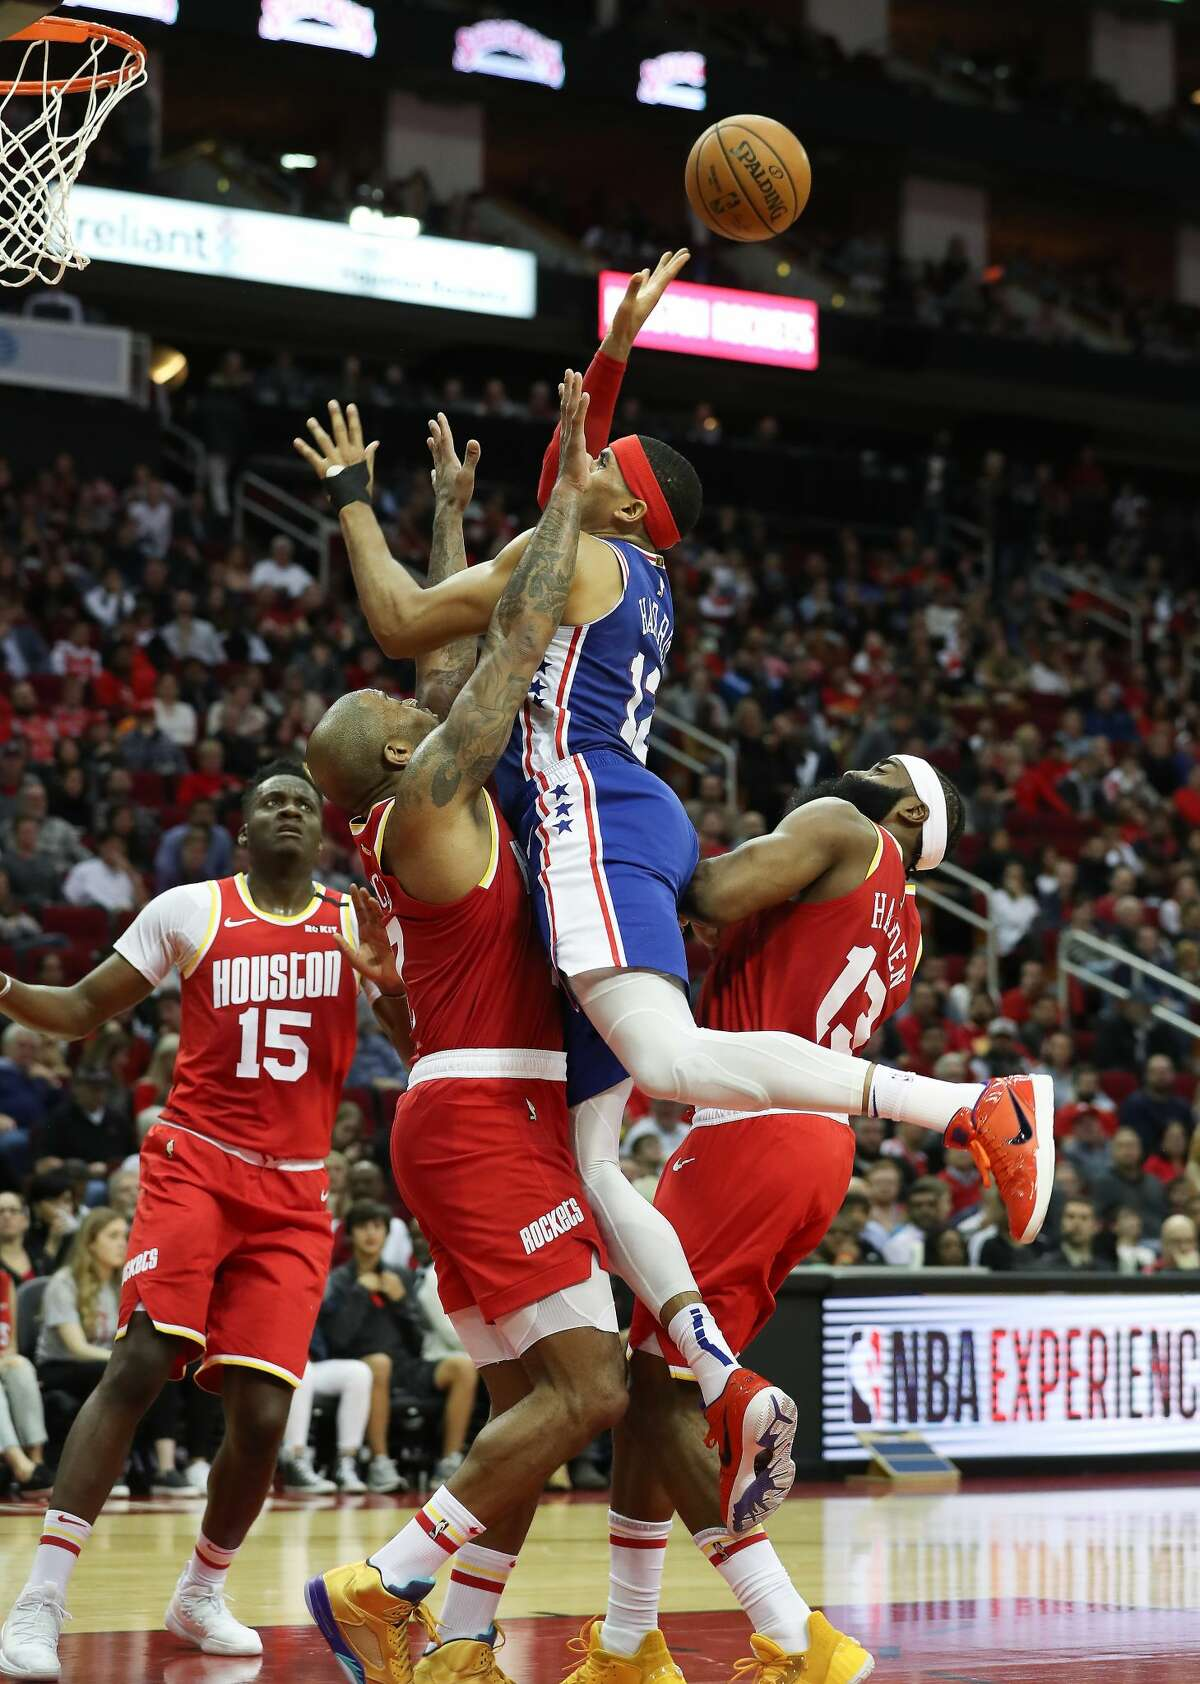 Philadelphia 76ers forward Mike Scott (12) attempts to score under pressure from Houston Rockets defenders during the first half of an NBA basketball game at Toyota Center on Friday, Jan. 3, 2020, in Houston.